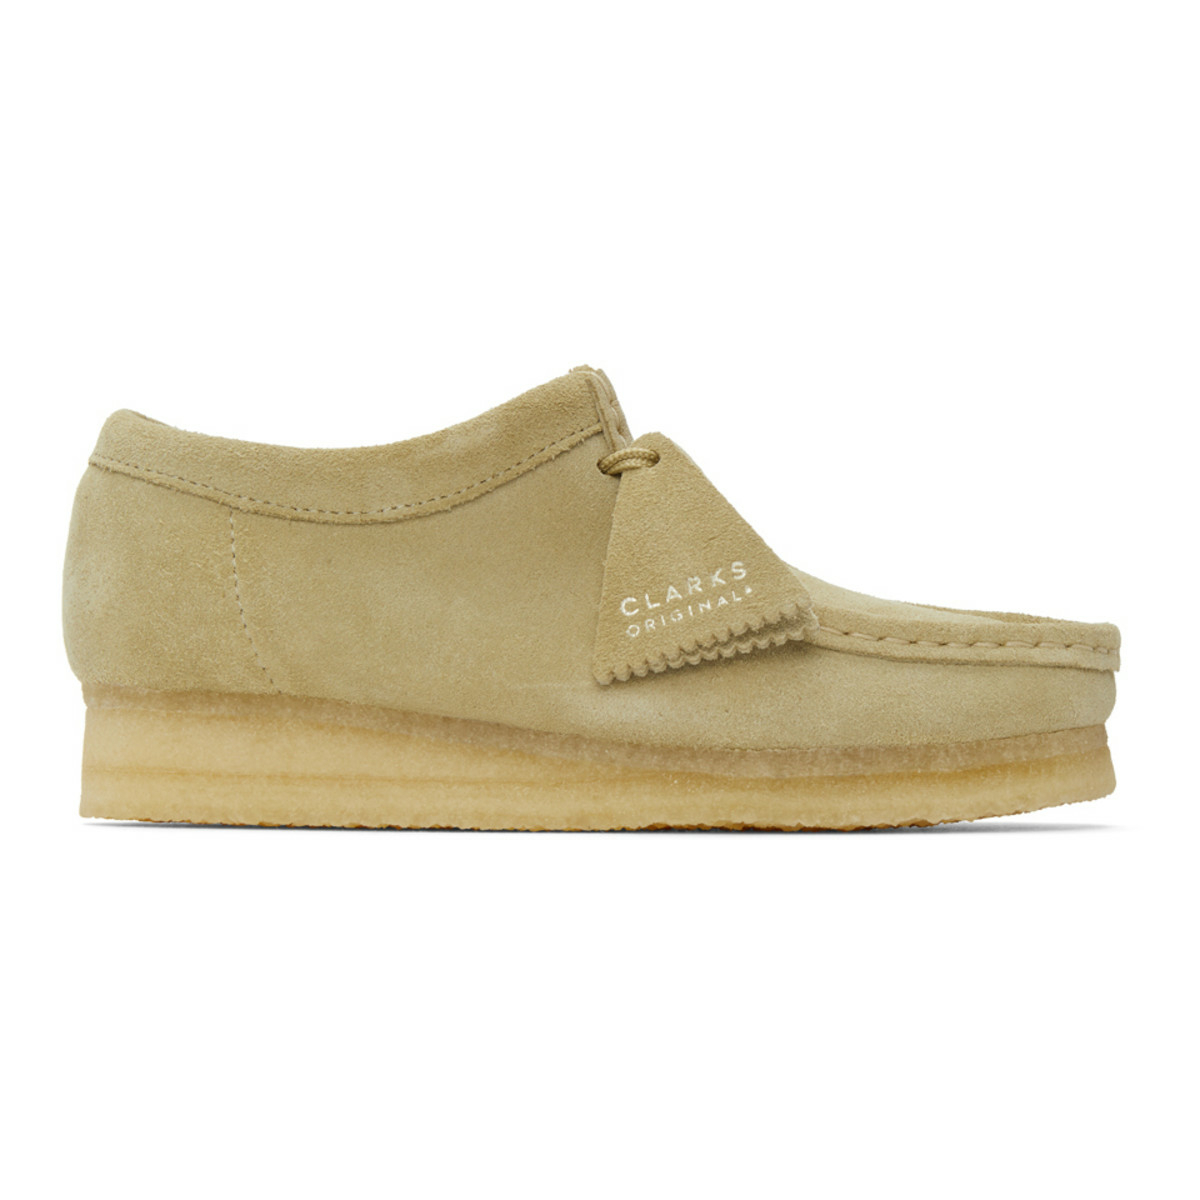 Women SHOES - GOOFASH - Womens LEATHER SHOES